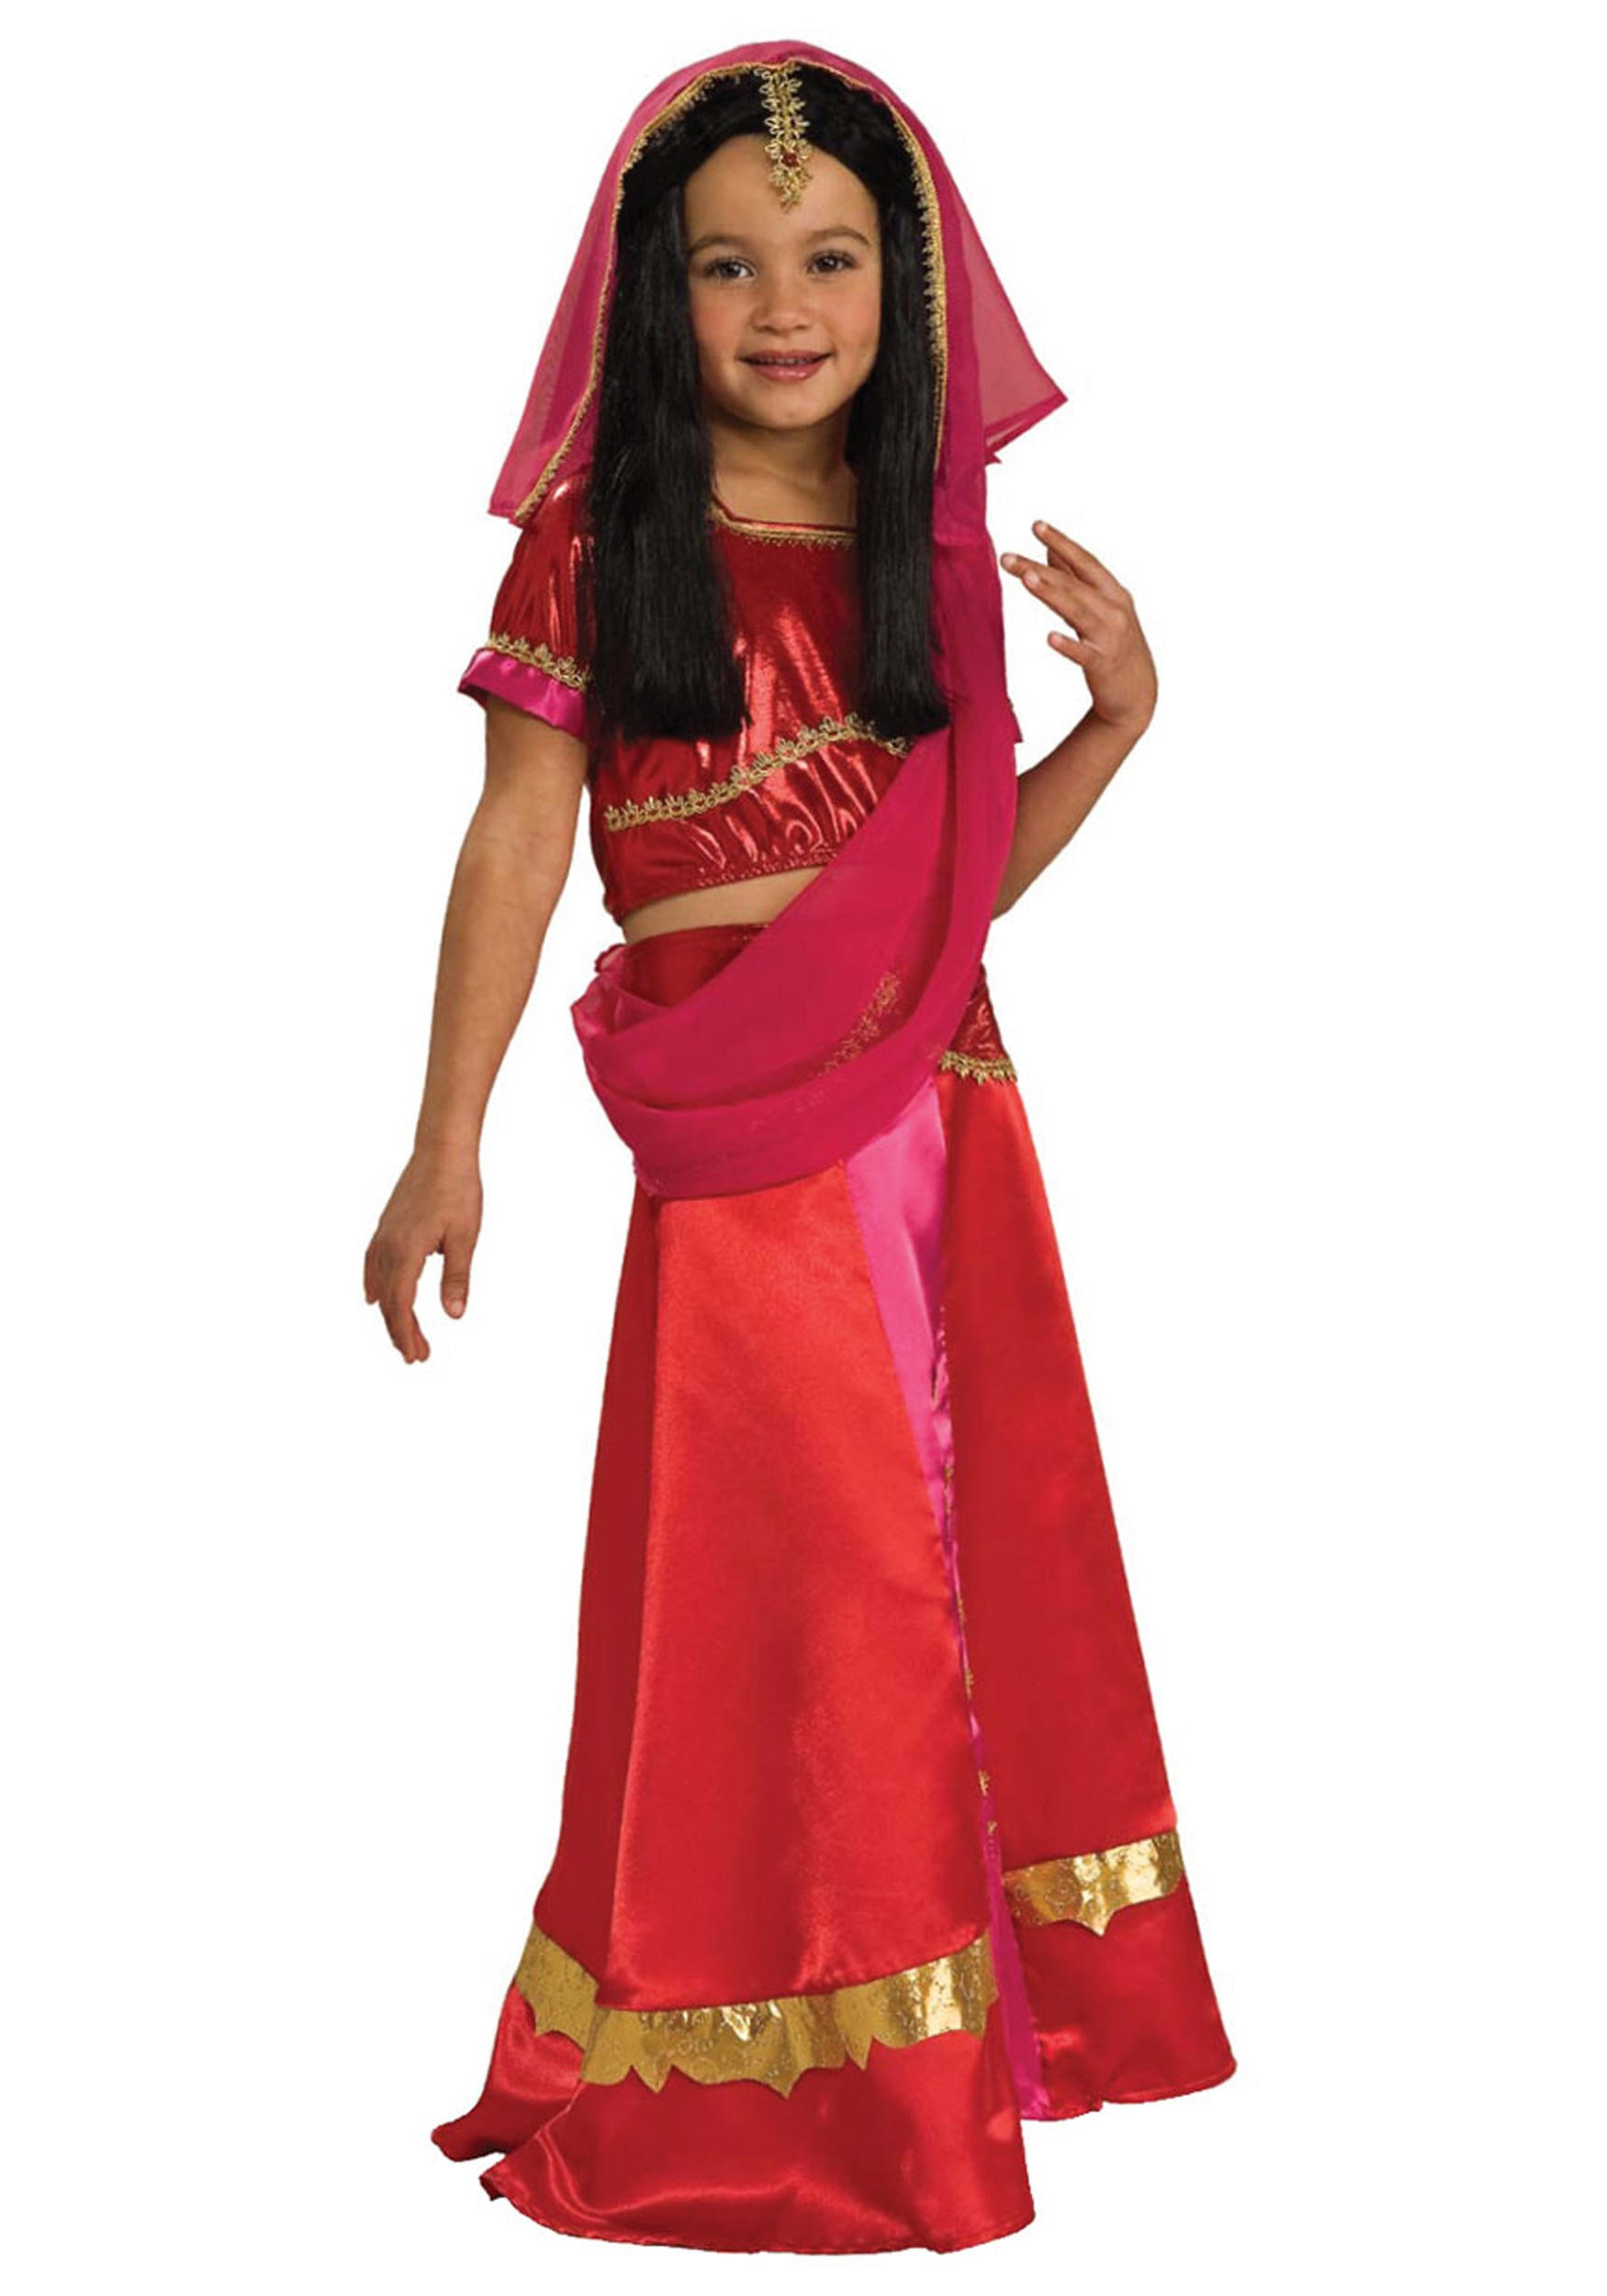 Girls Bollywood Princess Costume  sc 1 st  Halloween Costumes & Girls Bollywood Princess Costume - Halloween Costumes